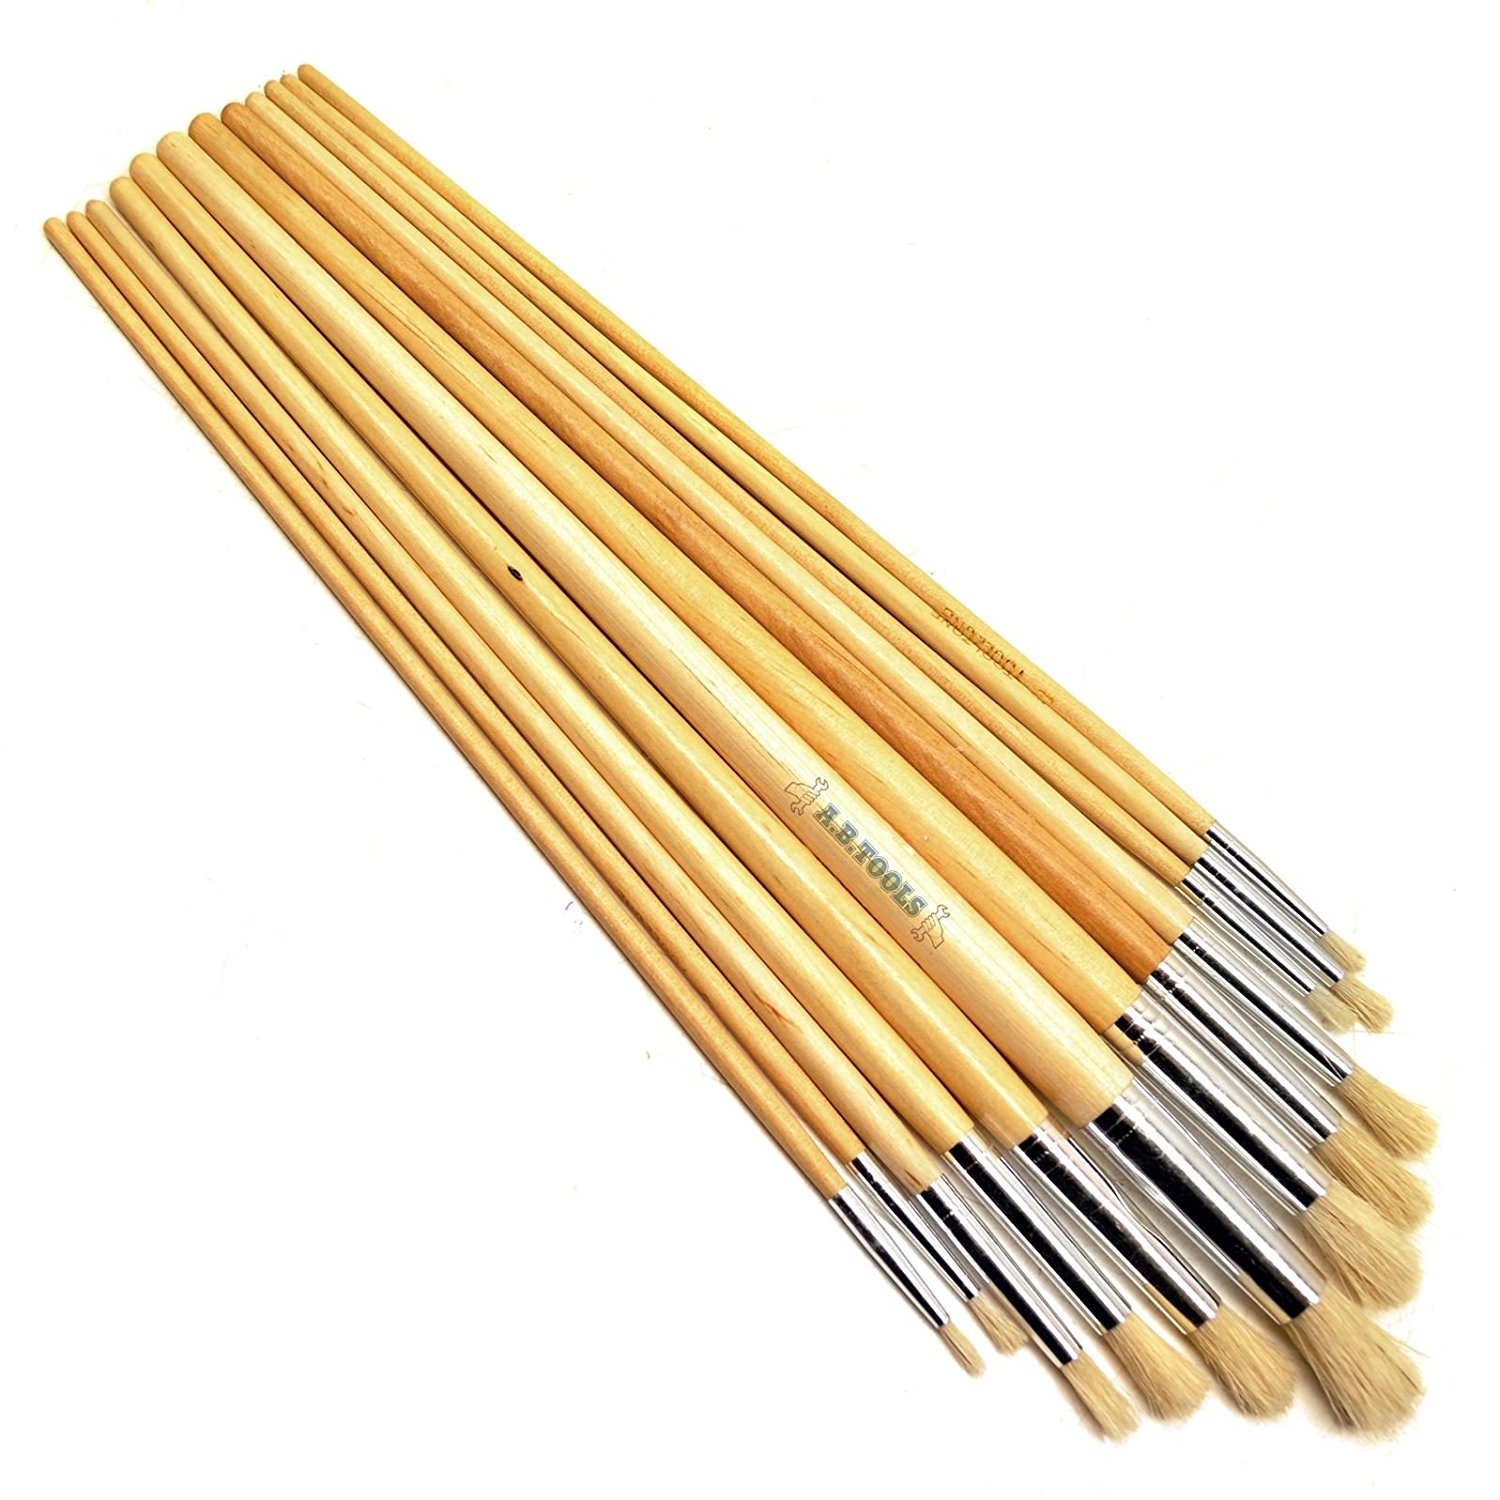 12pc Artist Craft Brushes Round Head Wooden Handles Paint Brushes TE582